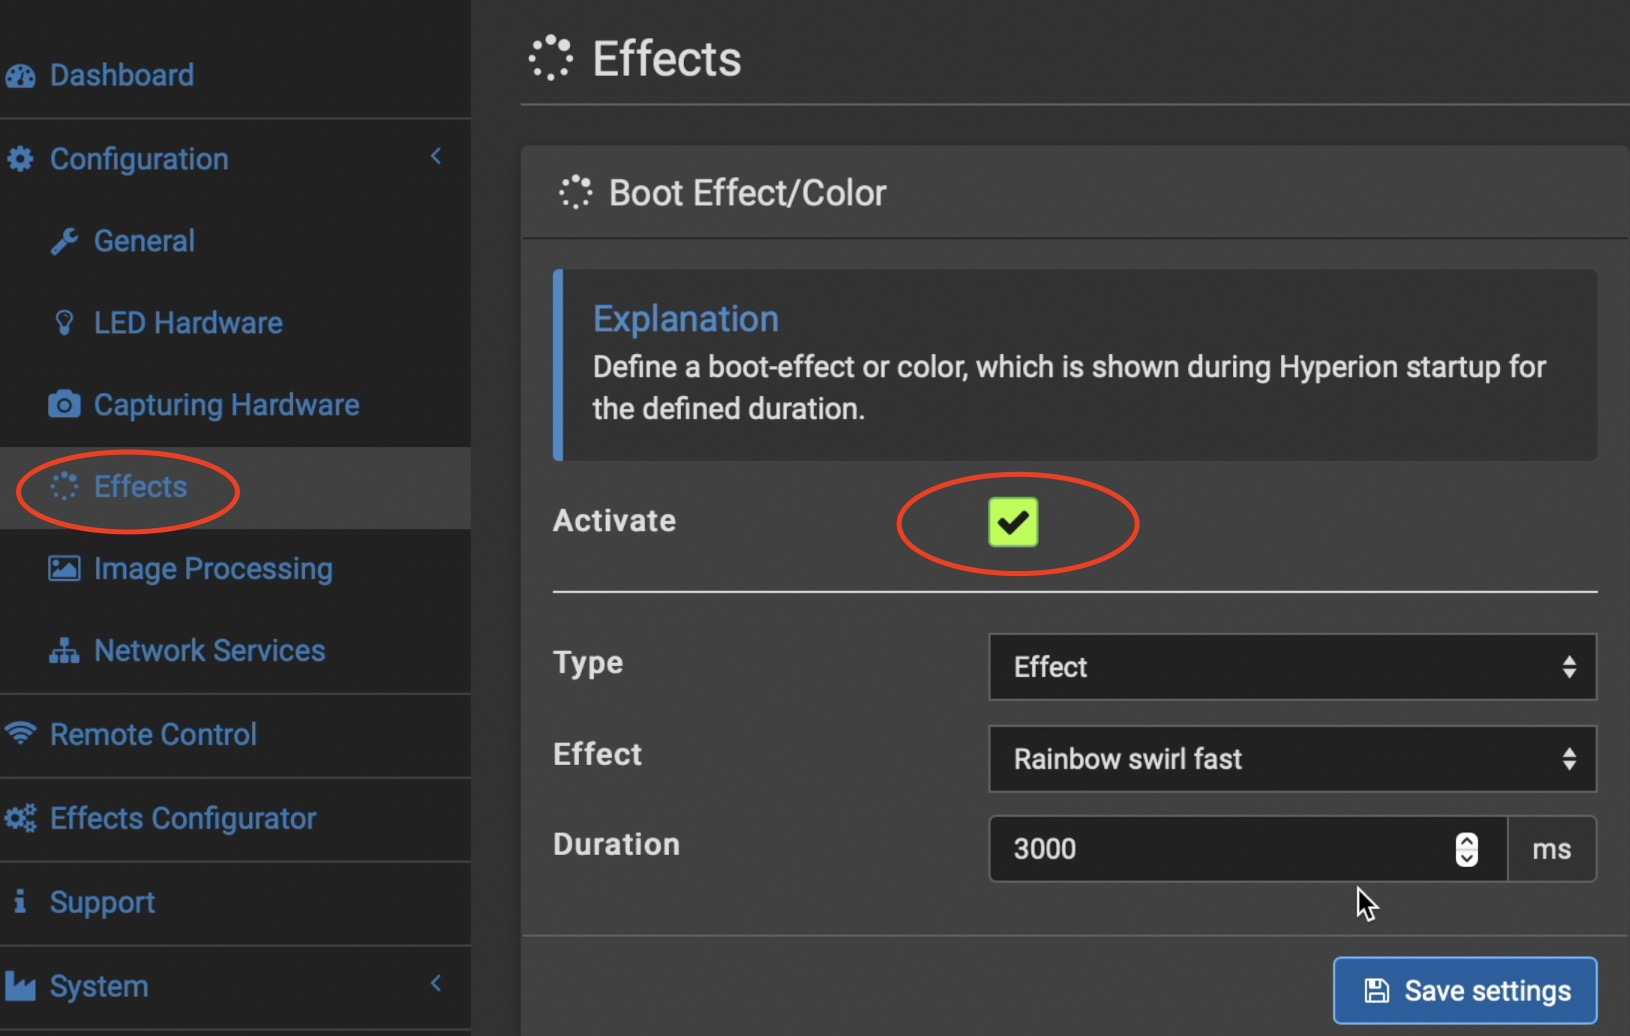 Activate Hyperion Boot Effect here that can be seen when Hyperion start